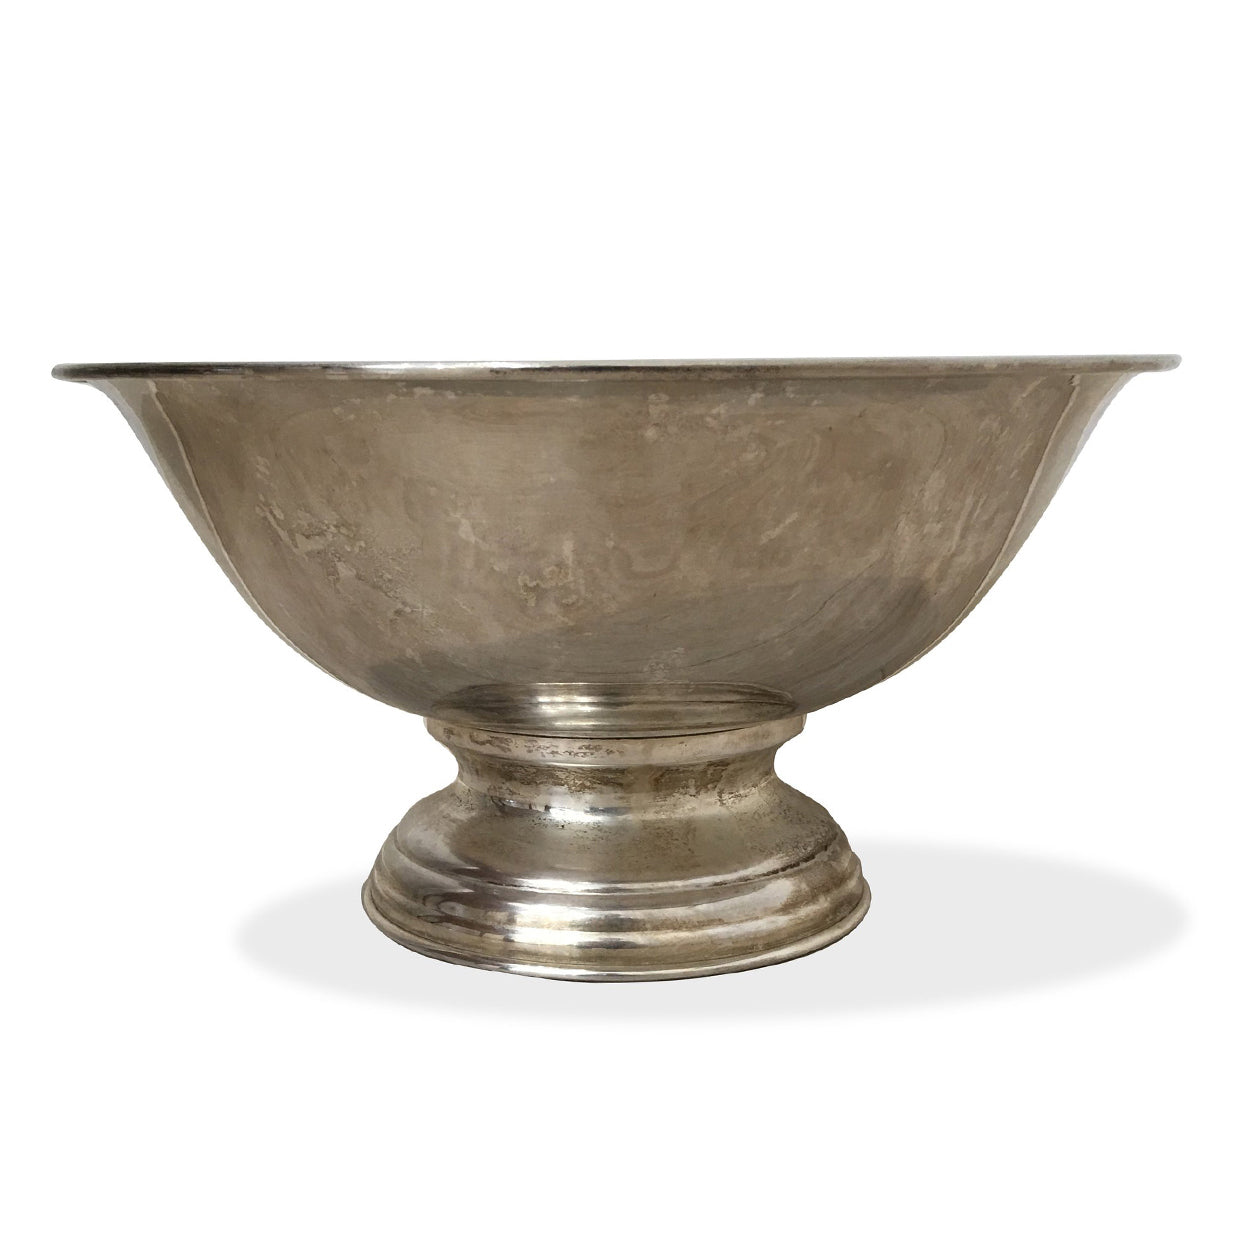 SILVERPLATE BOWL